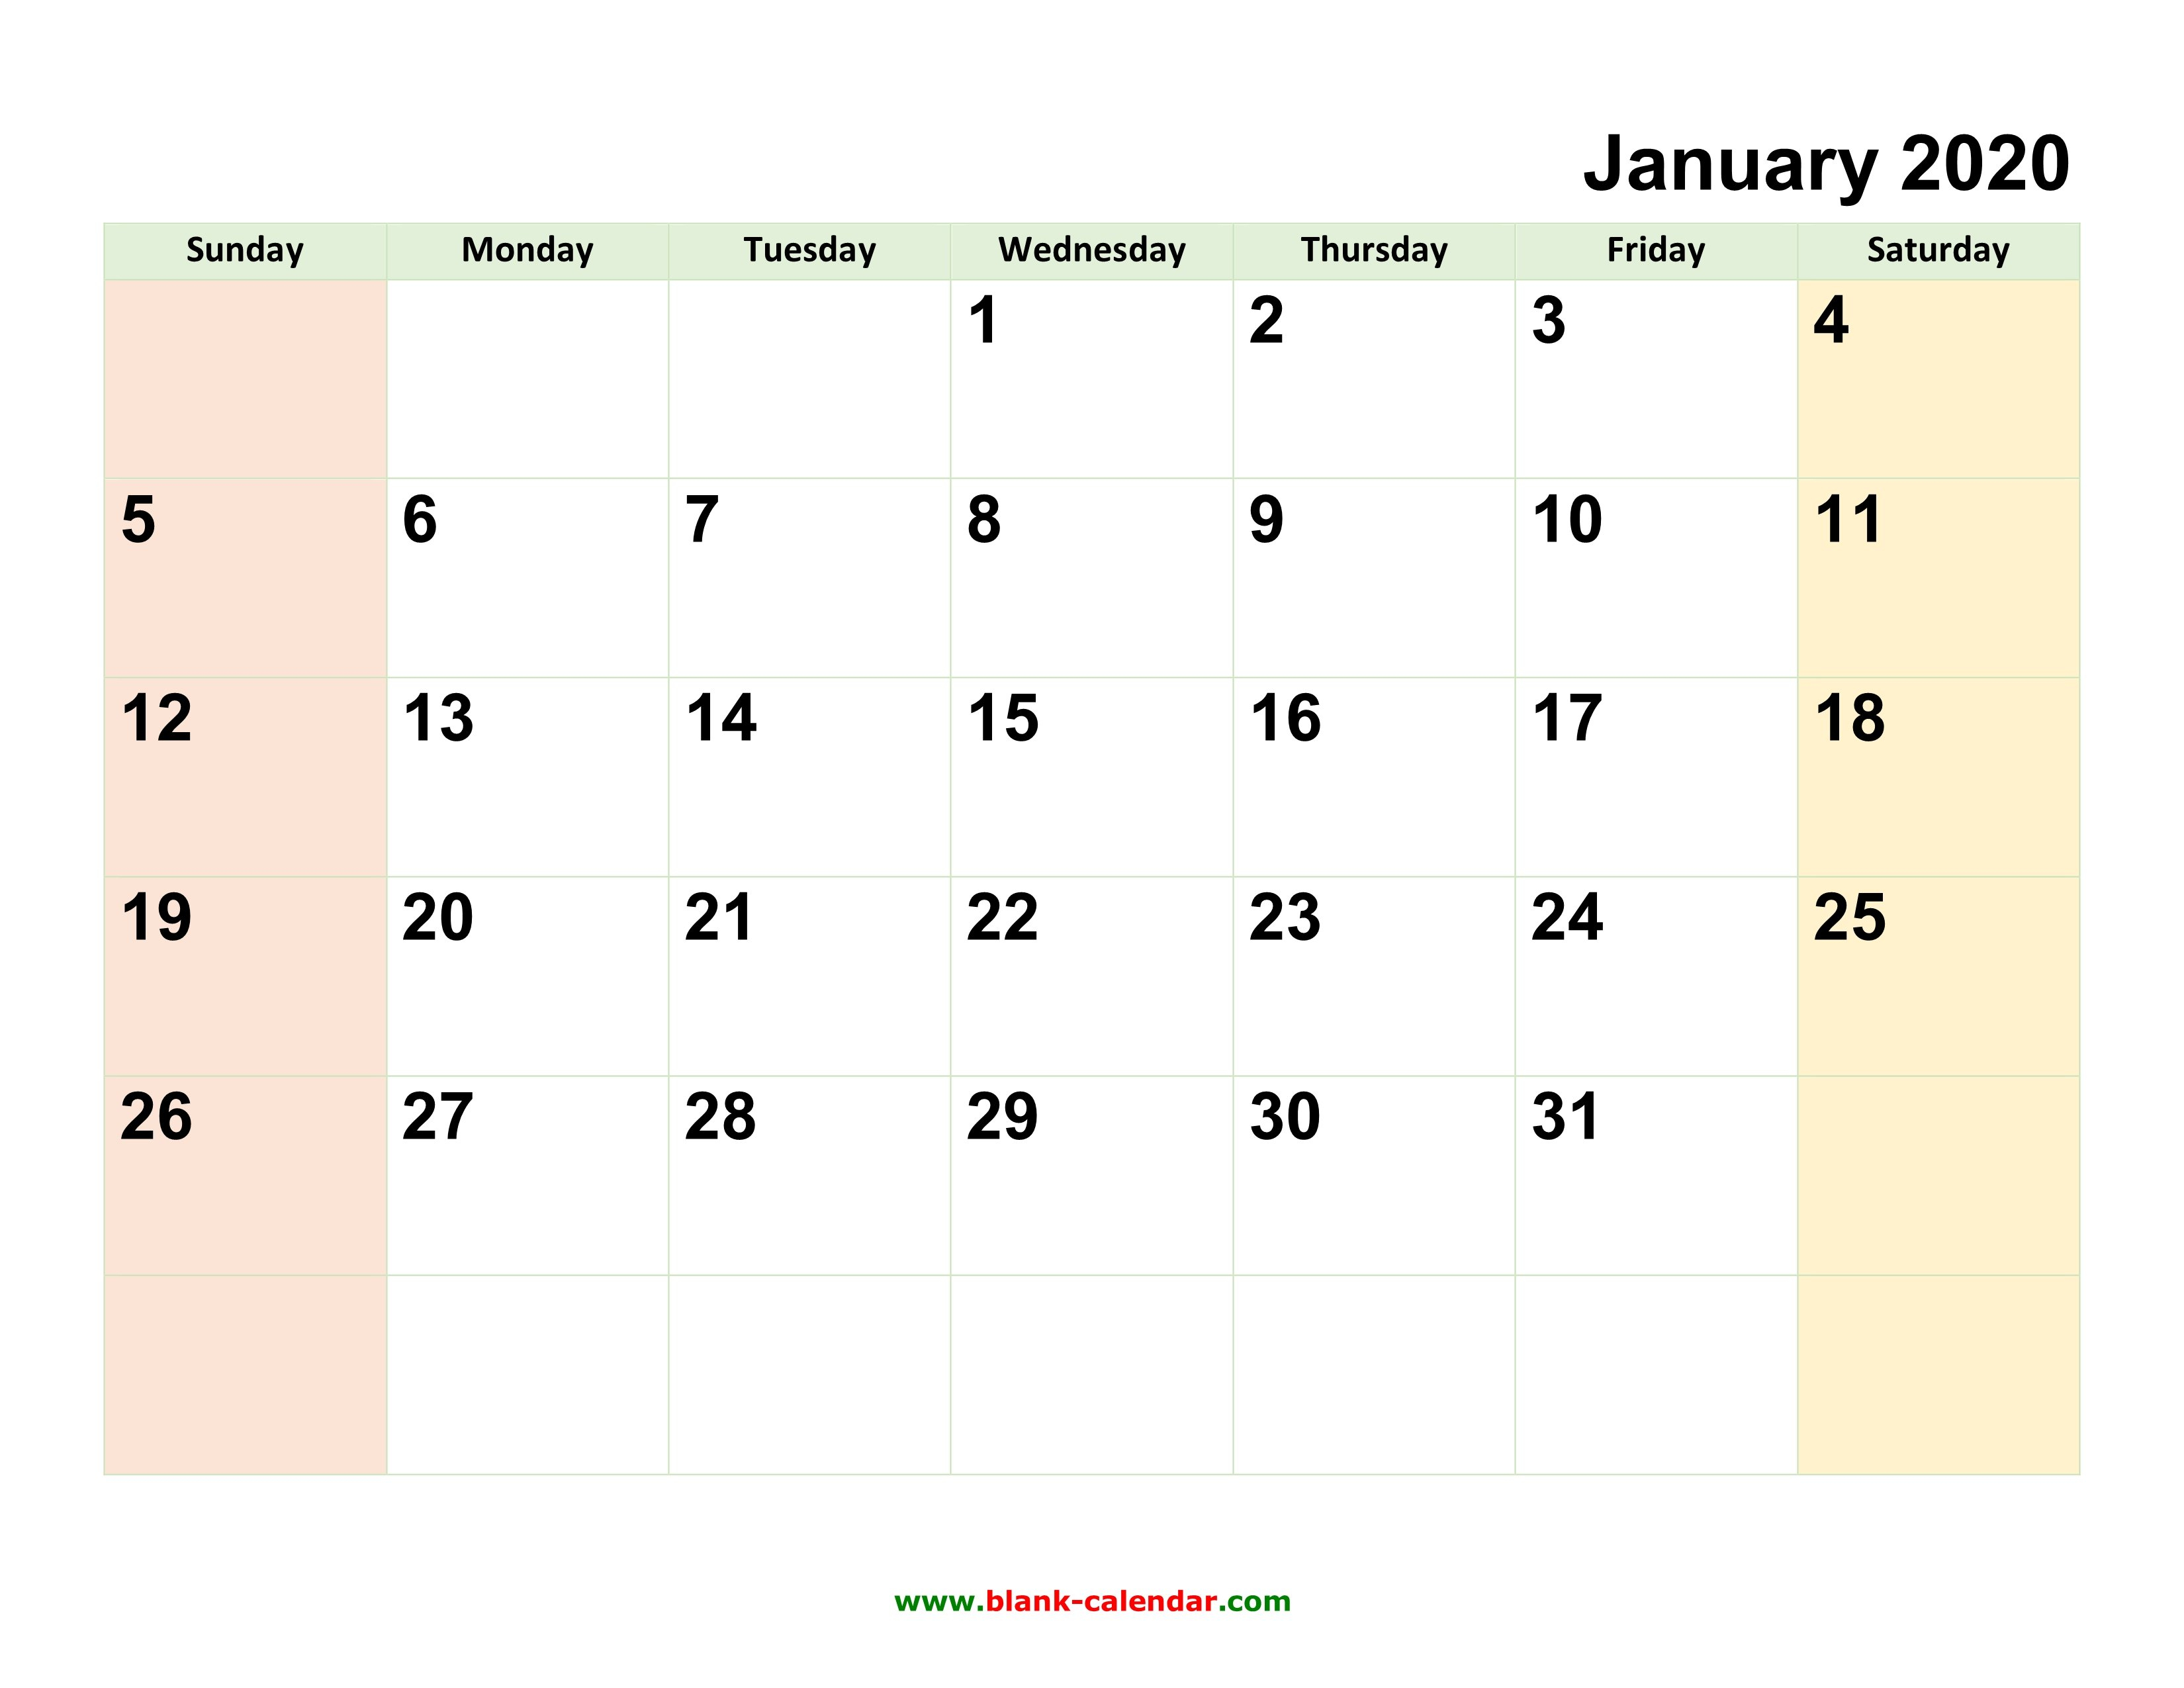 Monthly Calendar 2020 | Free Download, Editable And Printable Blank Calendar I Can Edit And Print